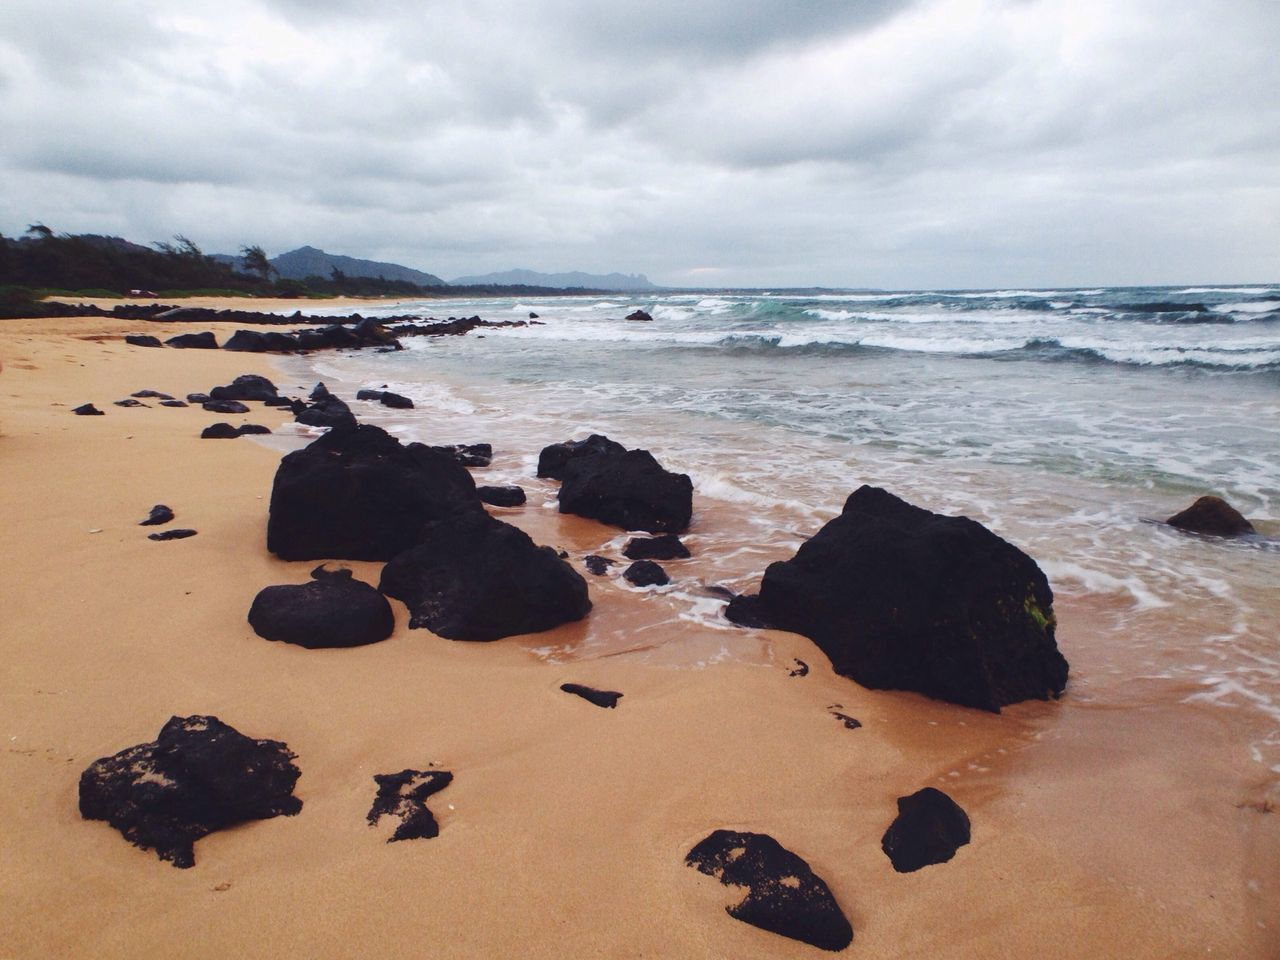 Beach Hawaii Landscape Nature Vacation Road To 50